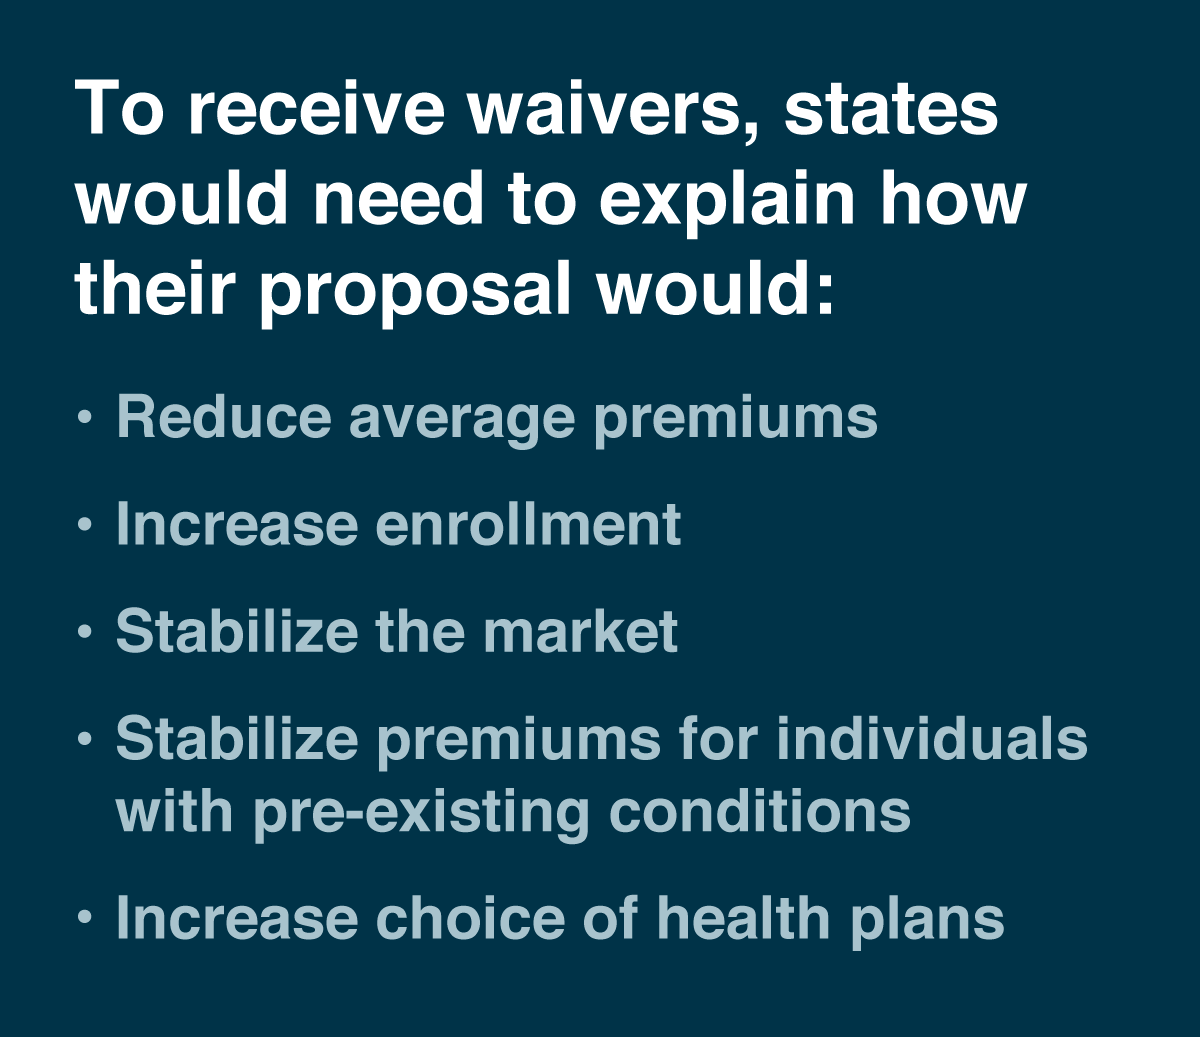 To receive waivers, states would need to explain how their proposal could do the following: Reduce average premiums; Increase enrollment; Stabilize the market; Stabilize premiums for individuals with pre-existing conditions; Increase the choice of health plans.